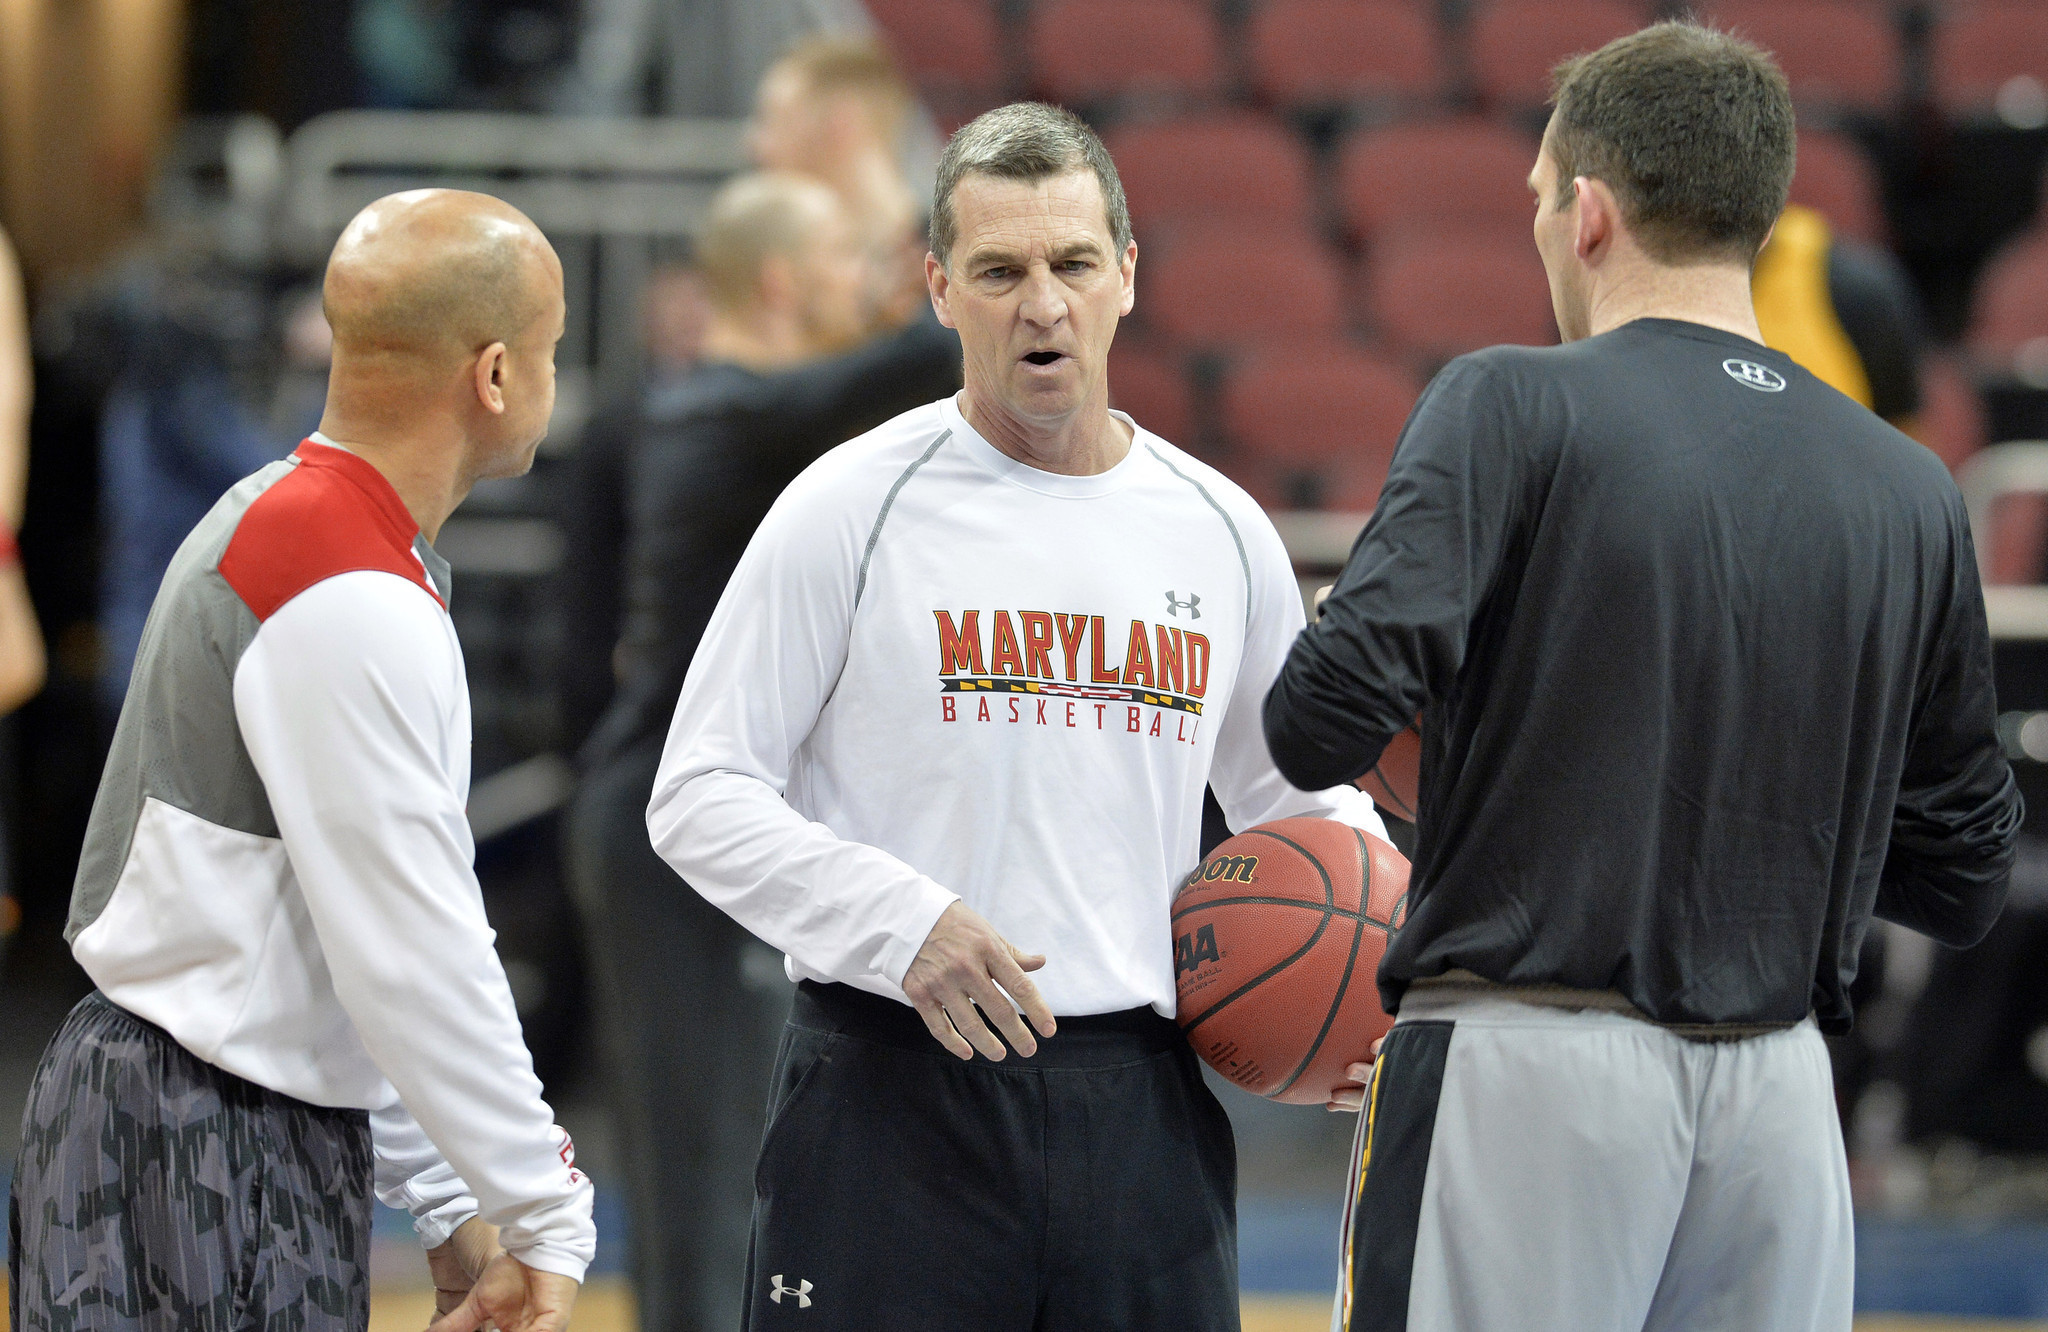 Bal-areas-for-maryland-men-s-basketball-coach-mark-turgeon-to-examine-after-summer-ball-20160727